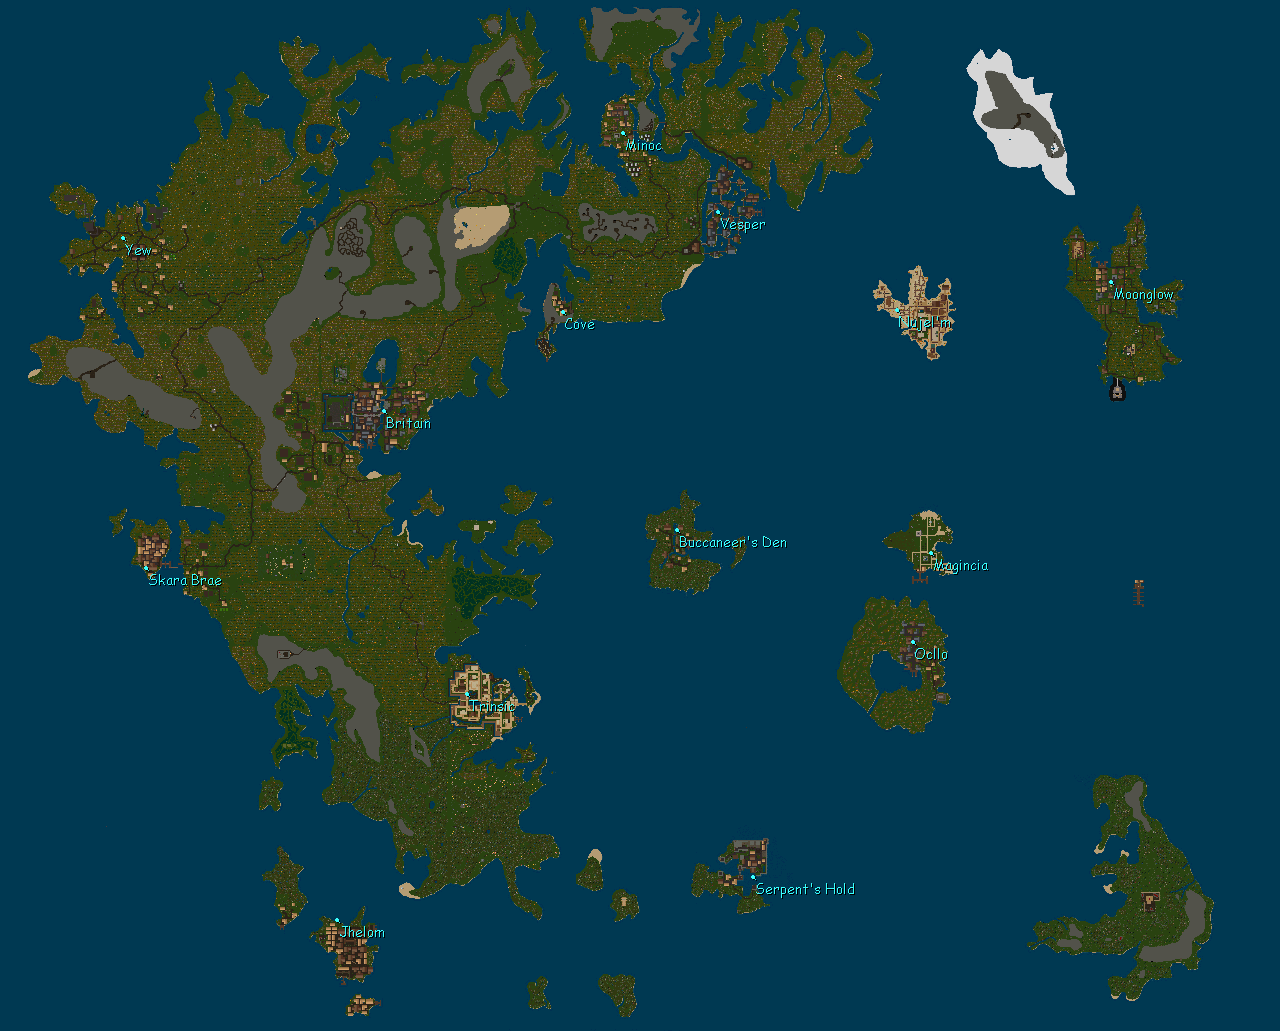 Fileuo world map largeg ultima online forever wiki fileuo world map largeg gumiabroncs